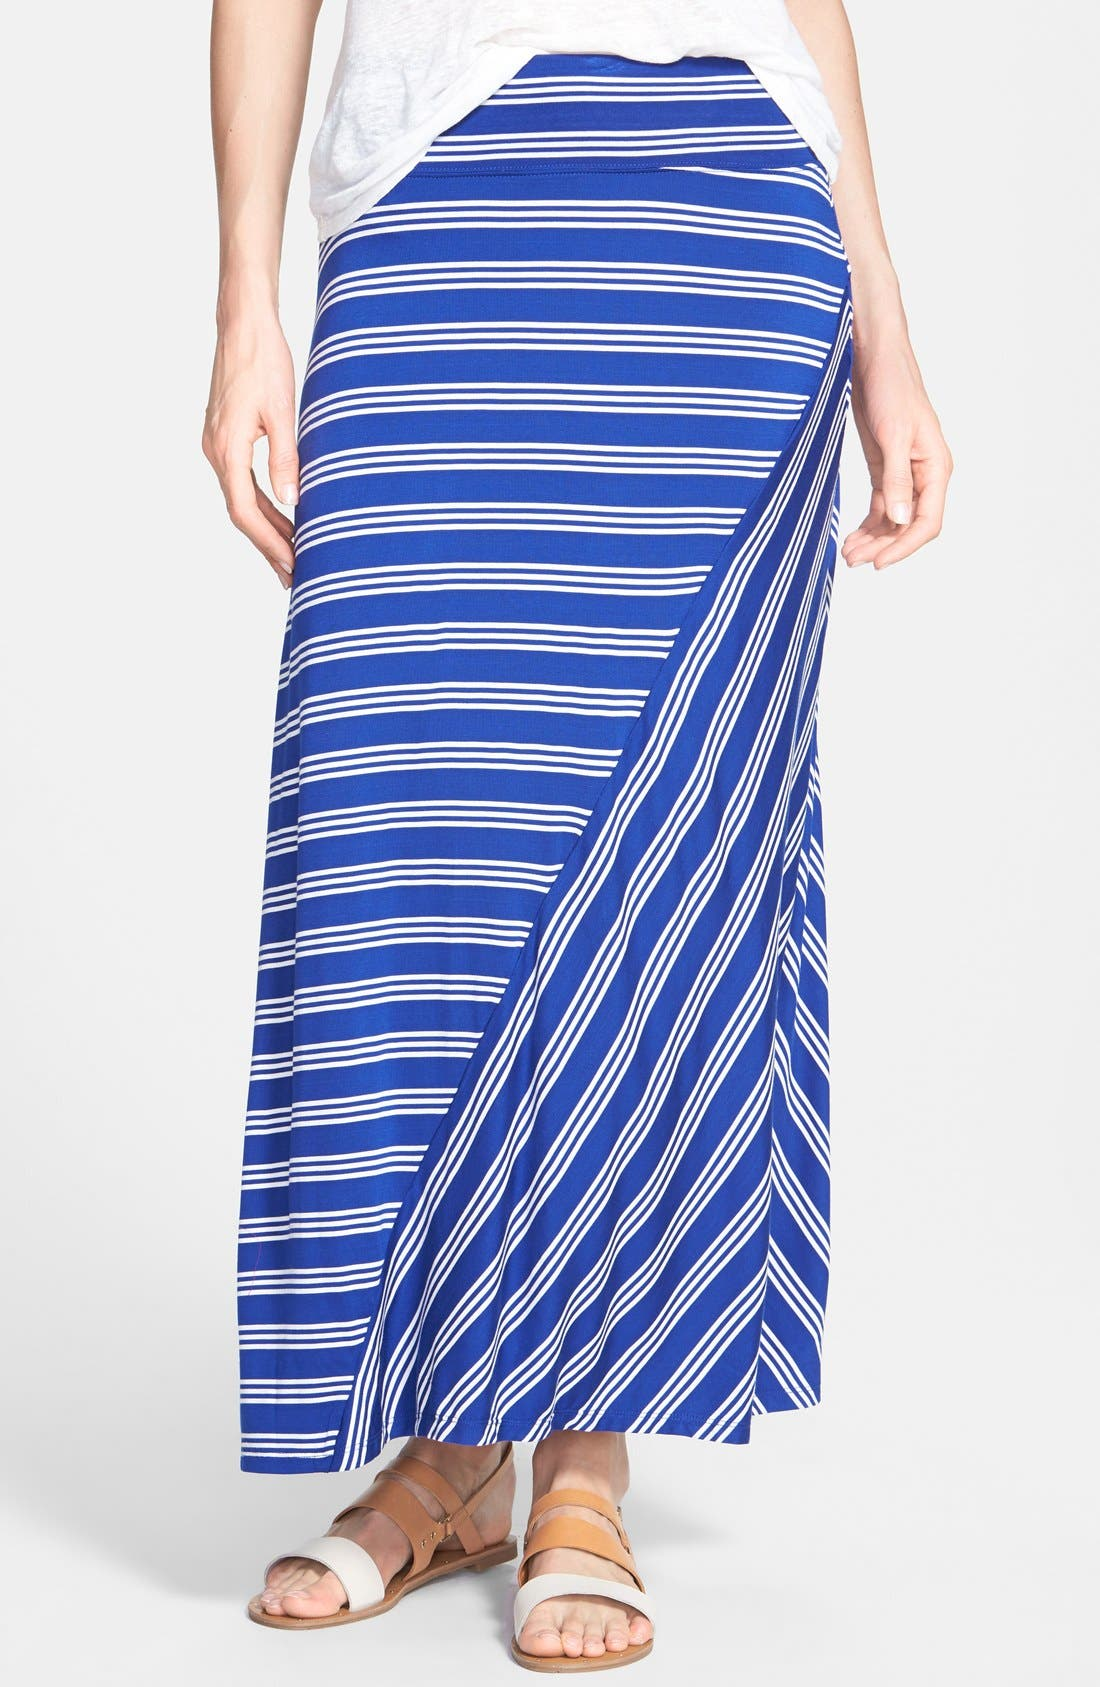 Alternate Image 1 Selected - kensie Stripe Stretch Knit Maxi Skirt